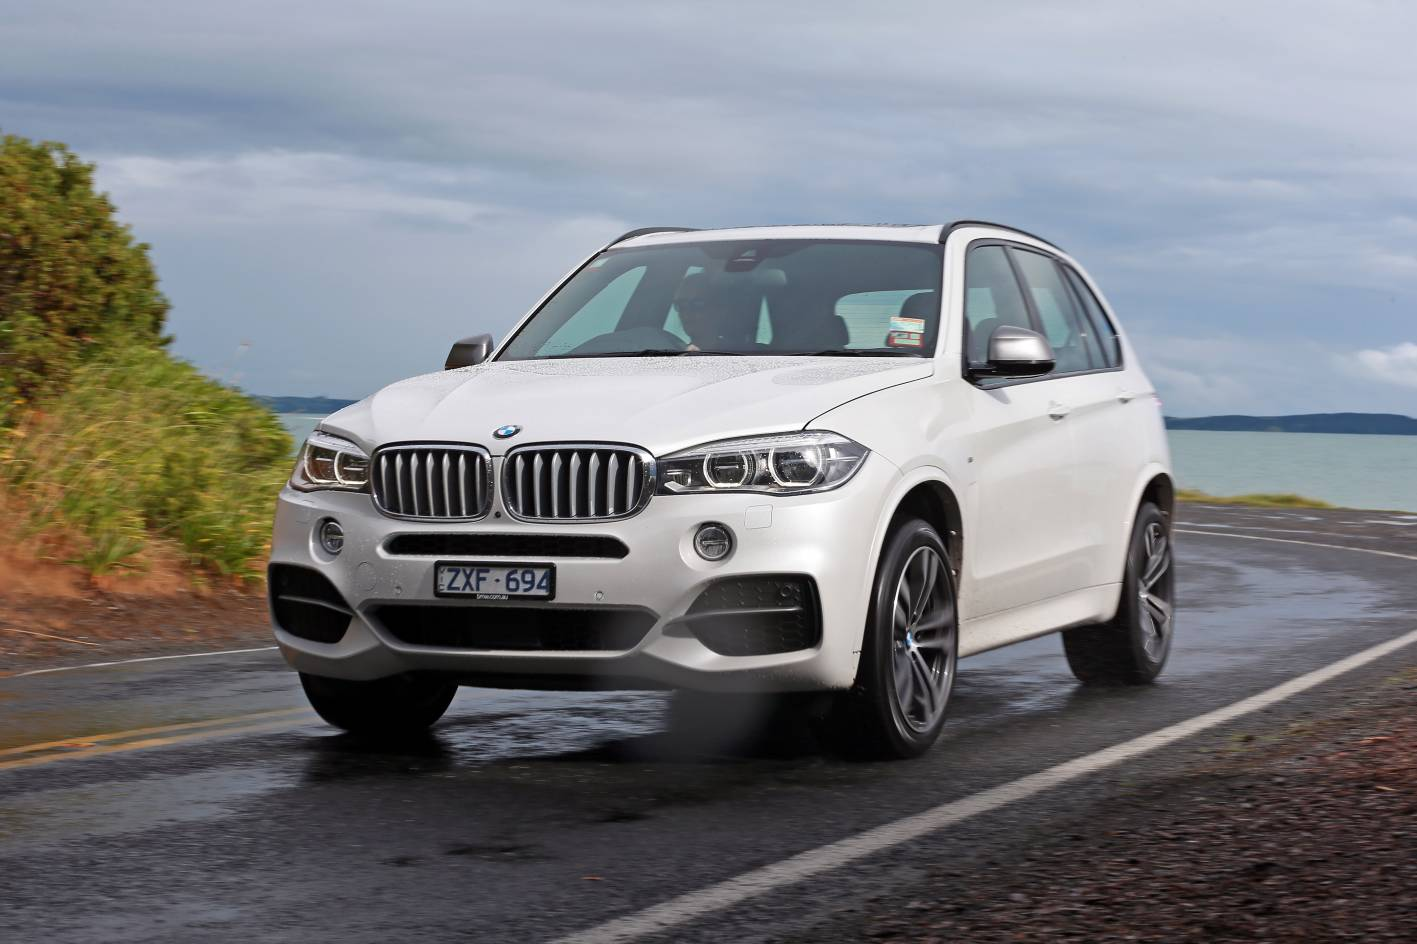 bmw x7 confirmed with us 1 billion plant investment performancedrive. Black Bedroom Furniture Sets. Home Design Ideas